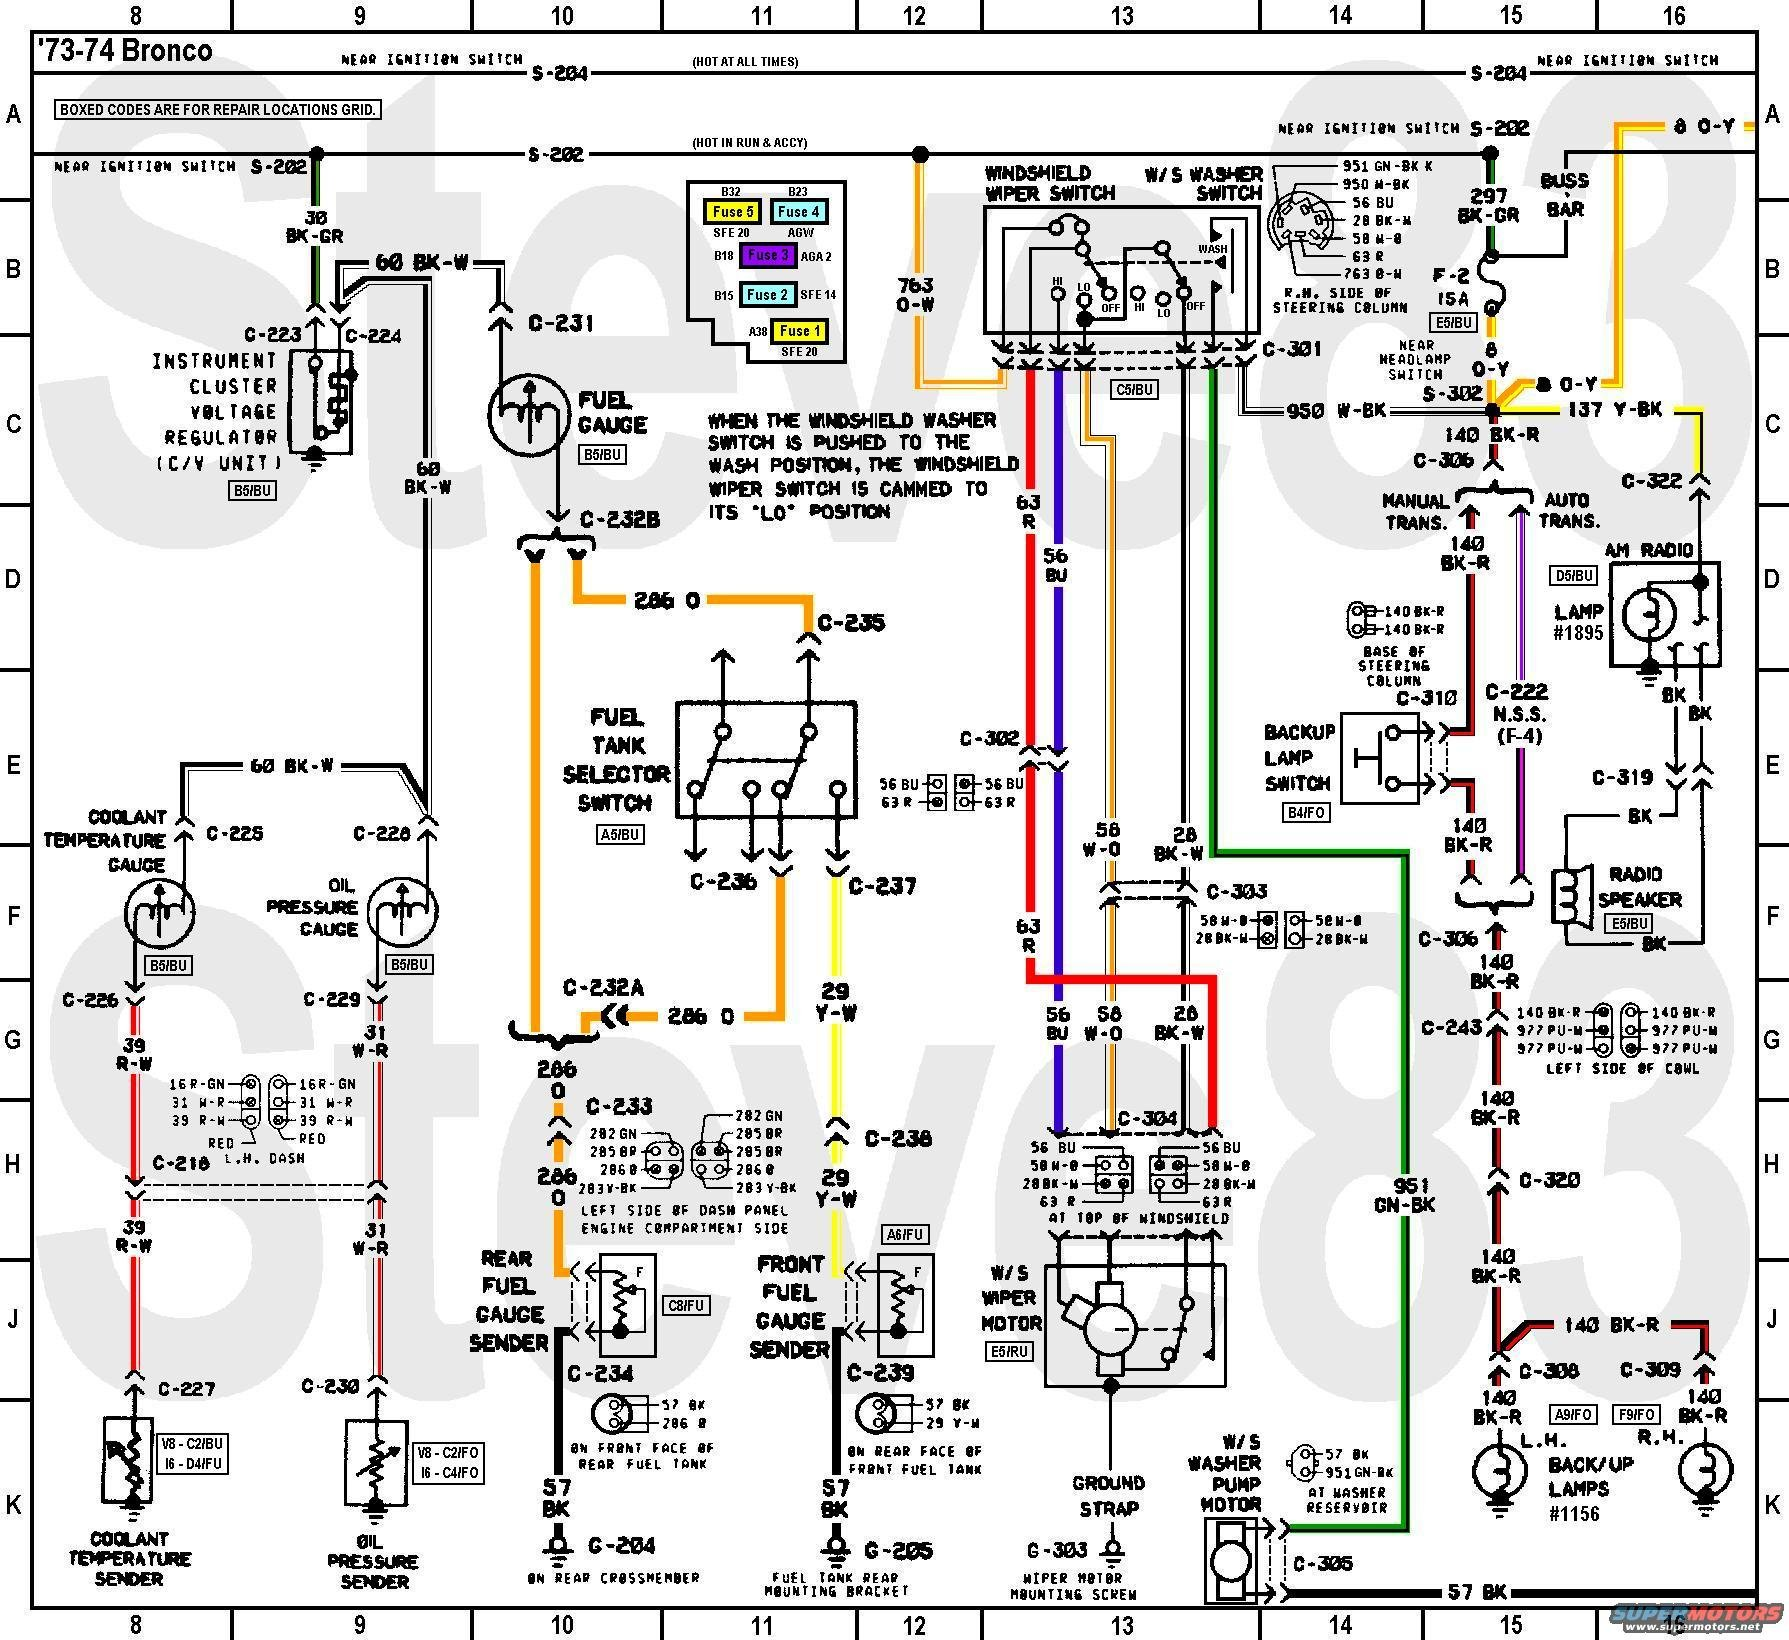 1976 f250 wiring diagram automotive wiring diagram library u2022 rh seigokanengland co uk 1980 F100 Wiring Diagram Wiring Diagrams for 1966 Ford Pick Up V8